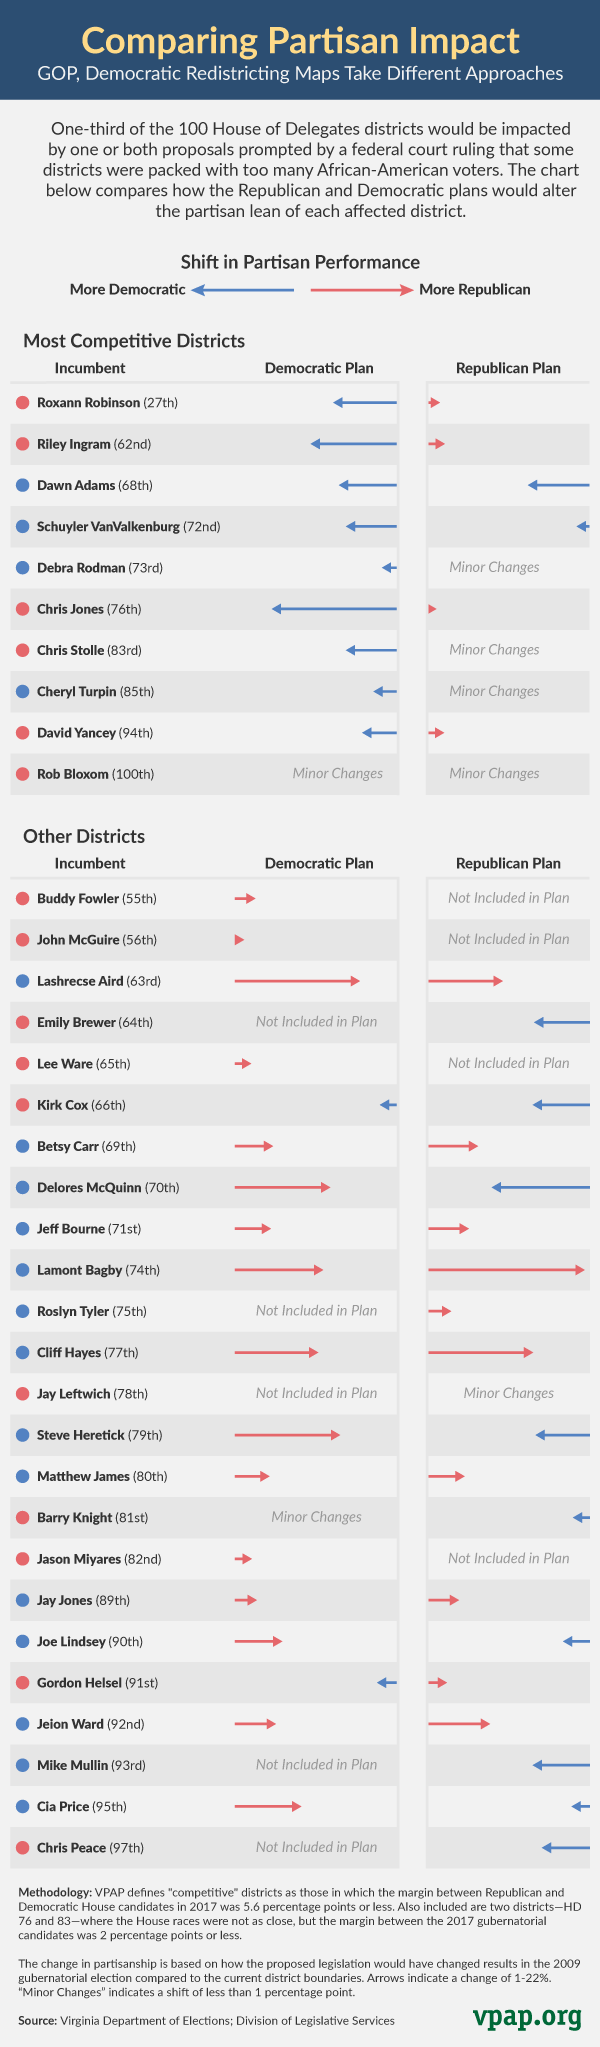 Comparing Partisan Impact of Redistricting Plans